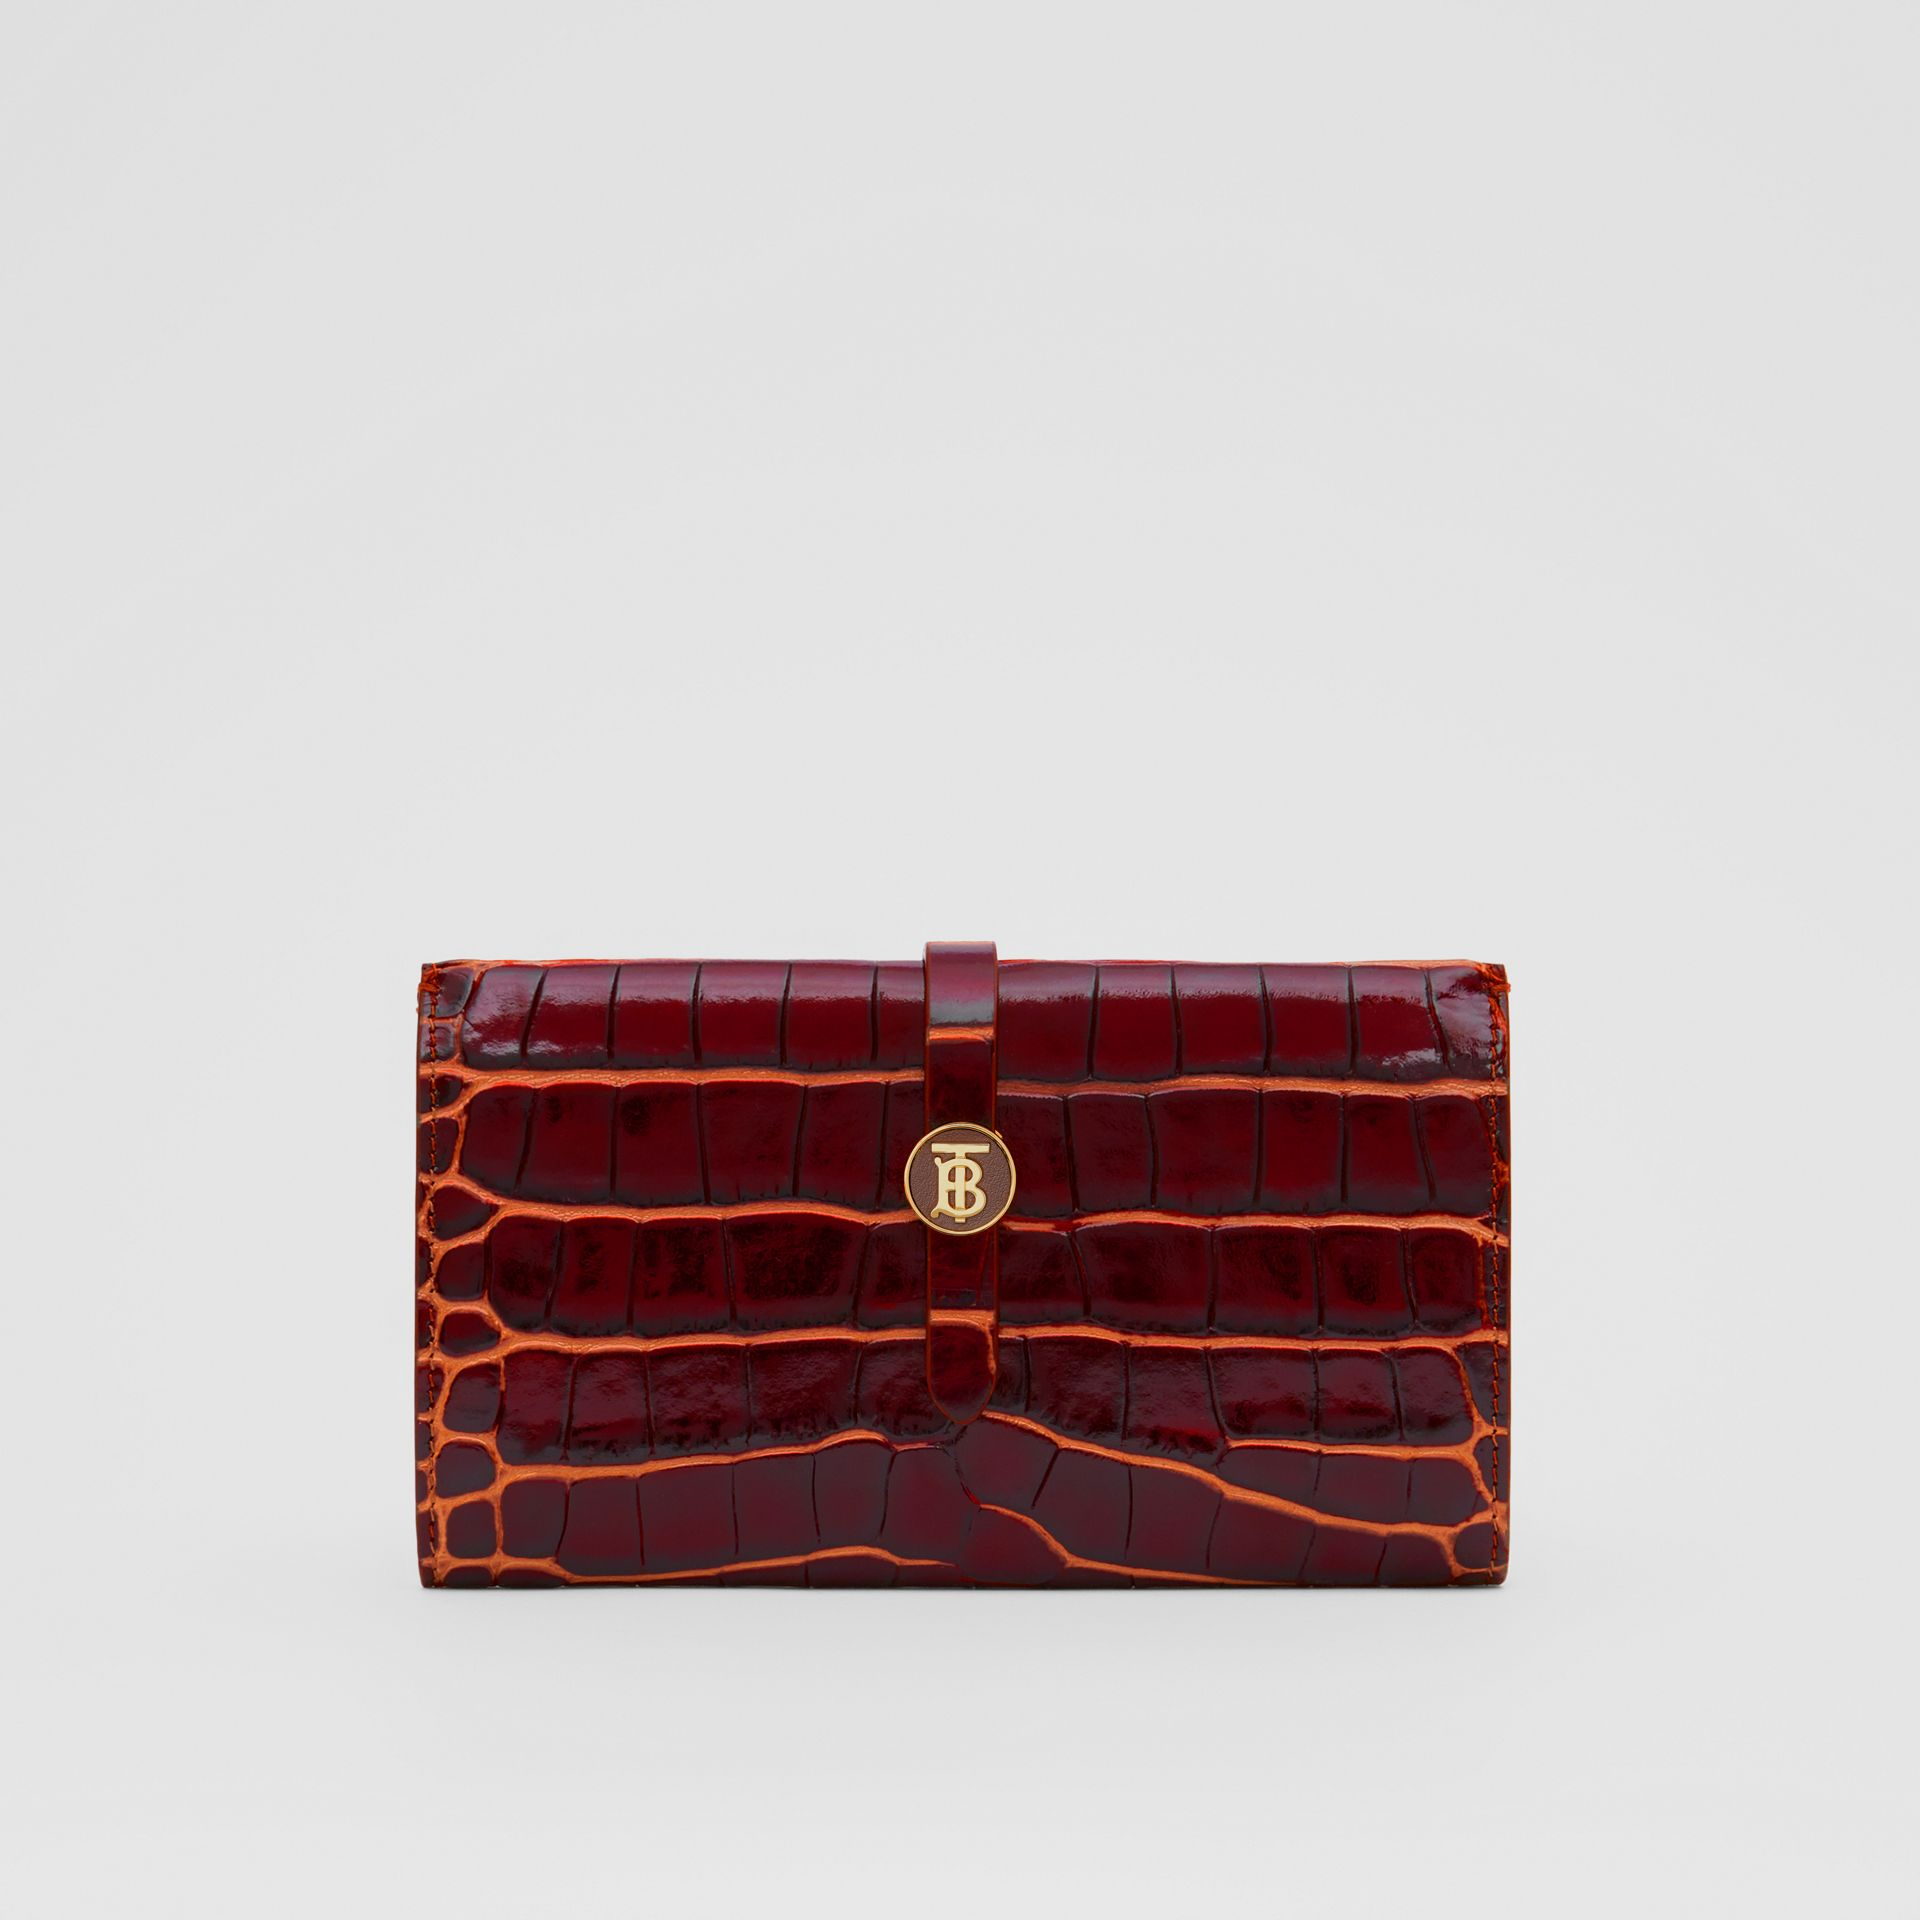 Monogram Motif Embossed Leather Folding Wallet in Tan - Women | Burberry - gallery image 0